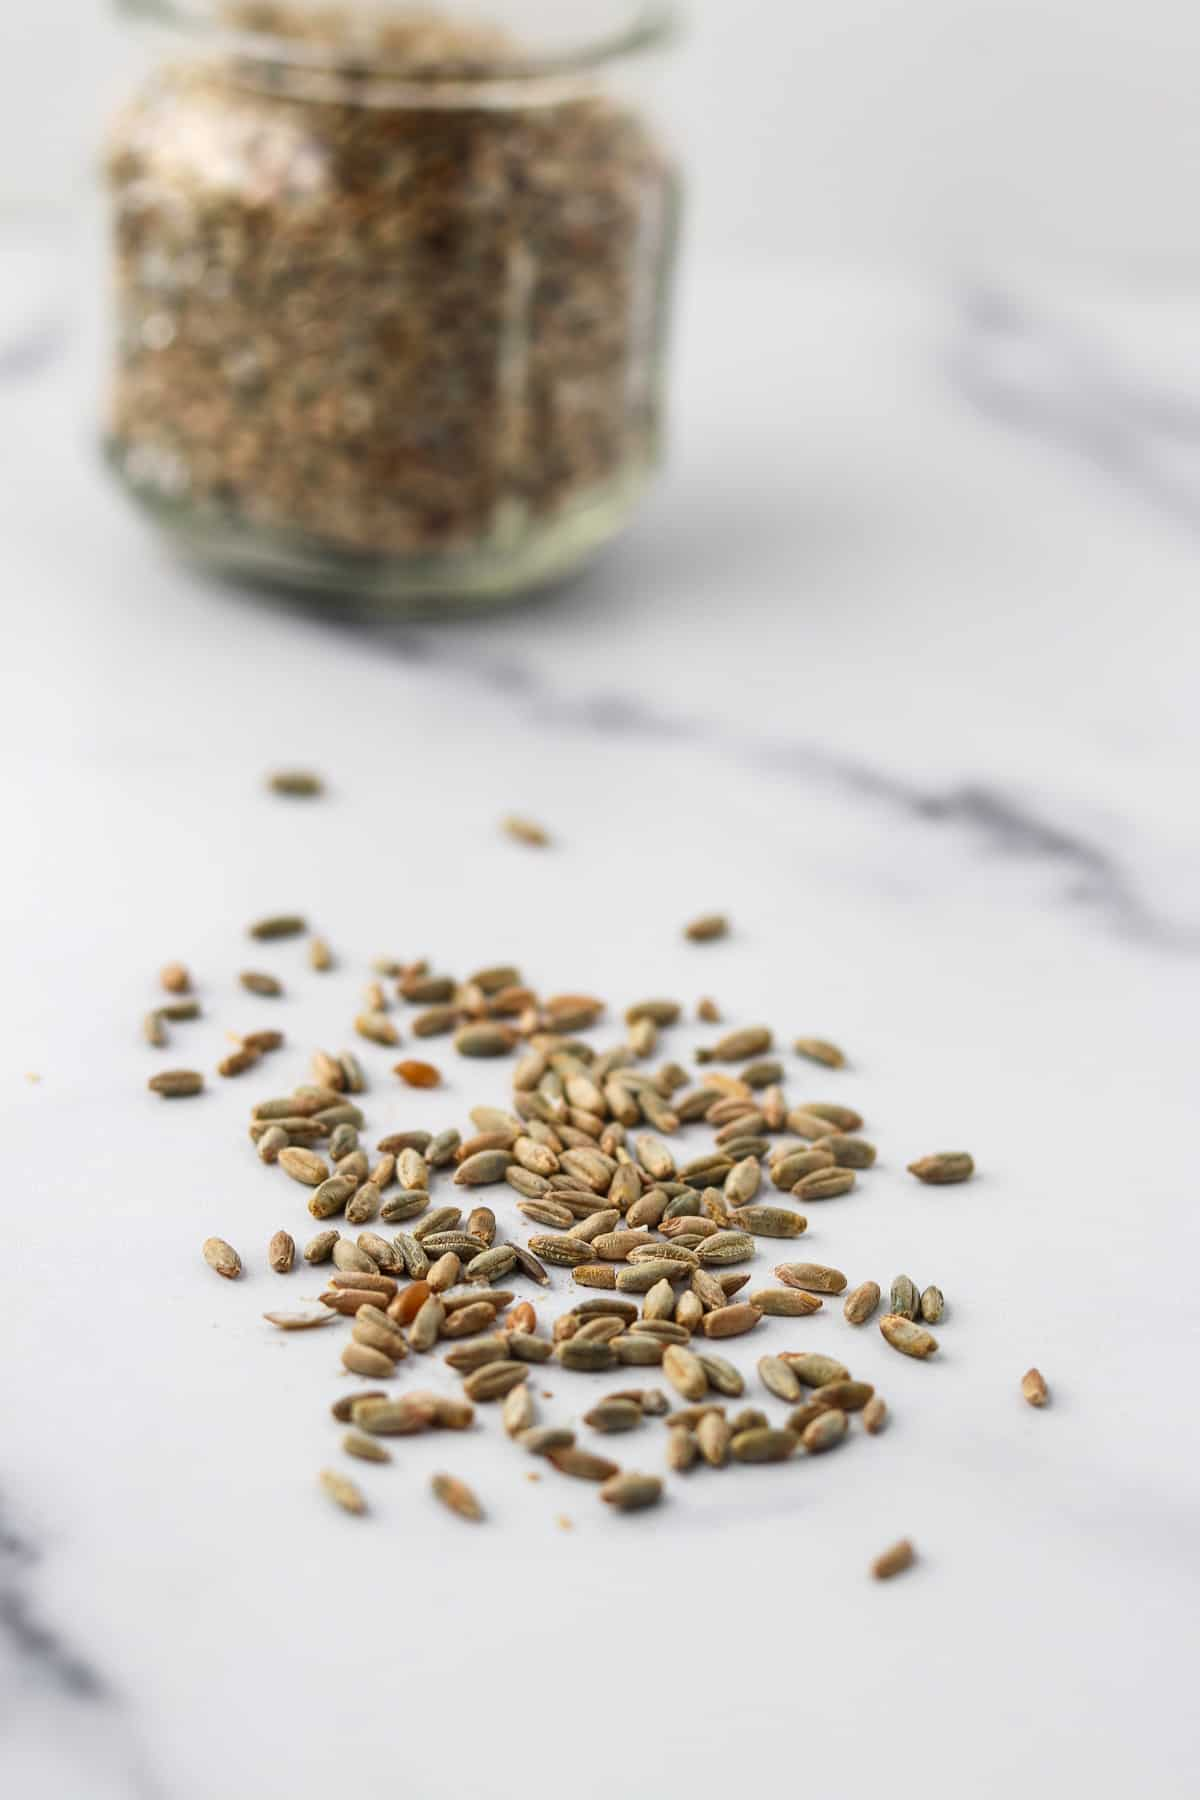 Rye Berries on a marble surface.